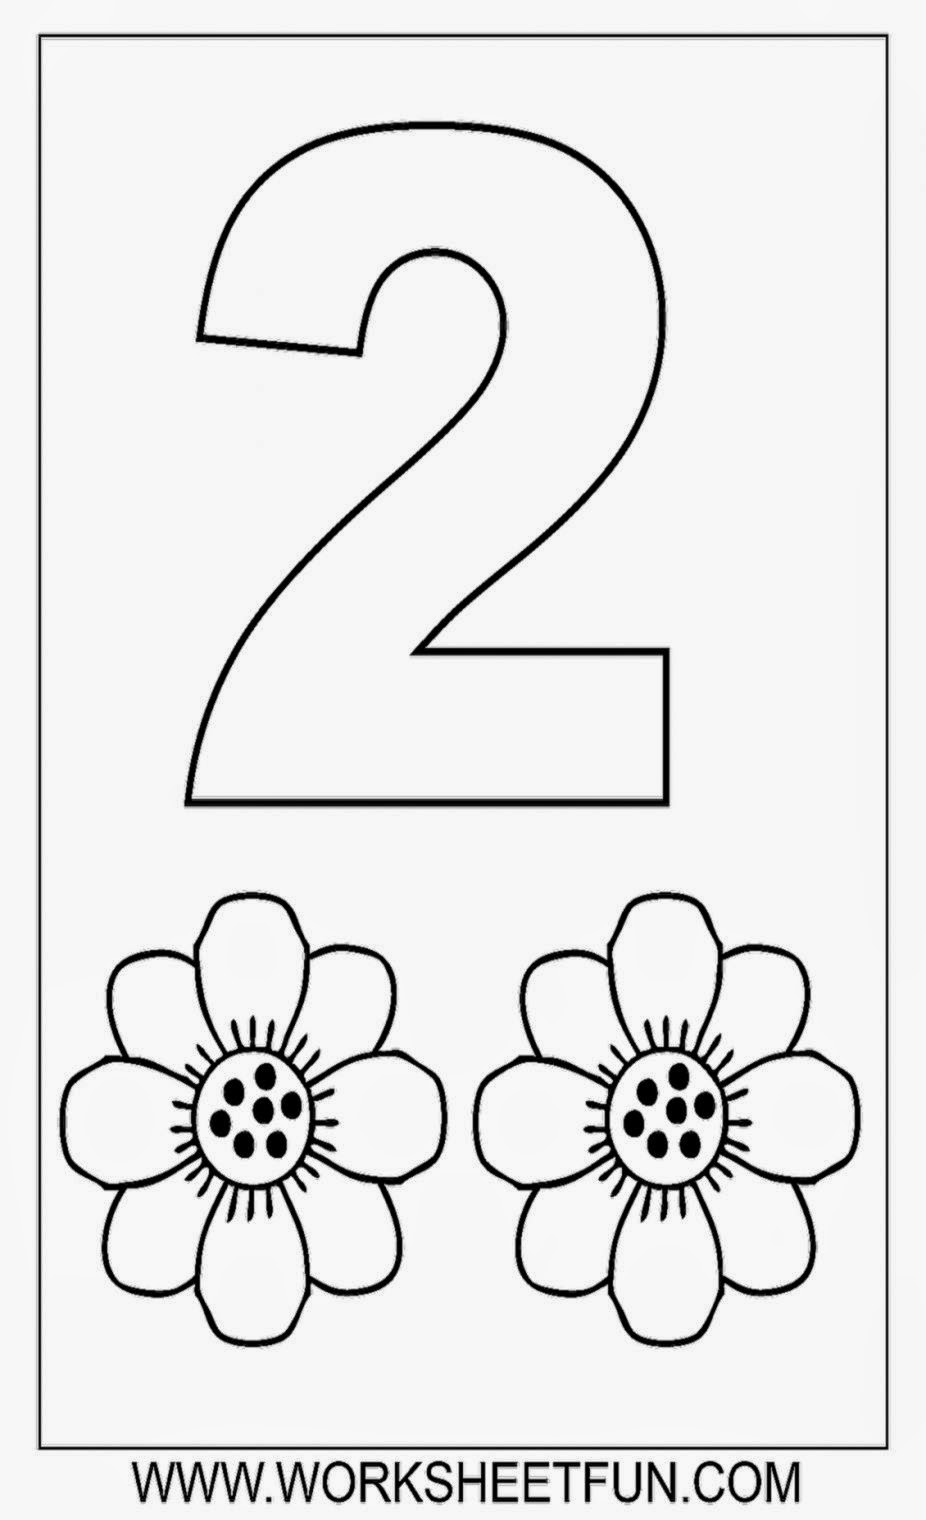 Printable Color By Number Sheets | Free Coloring Sheet